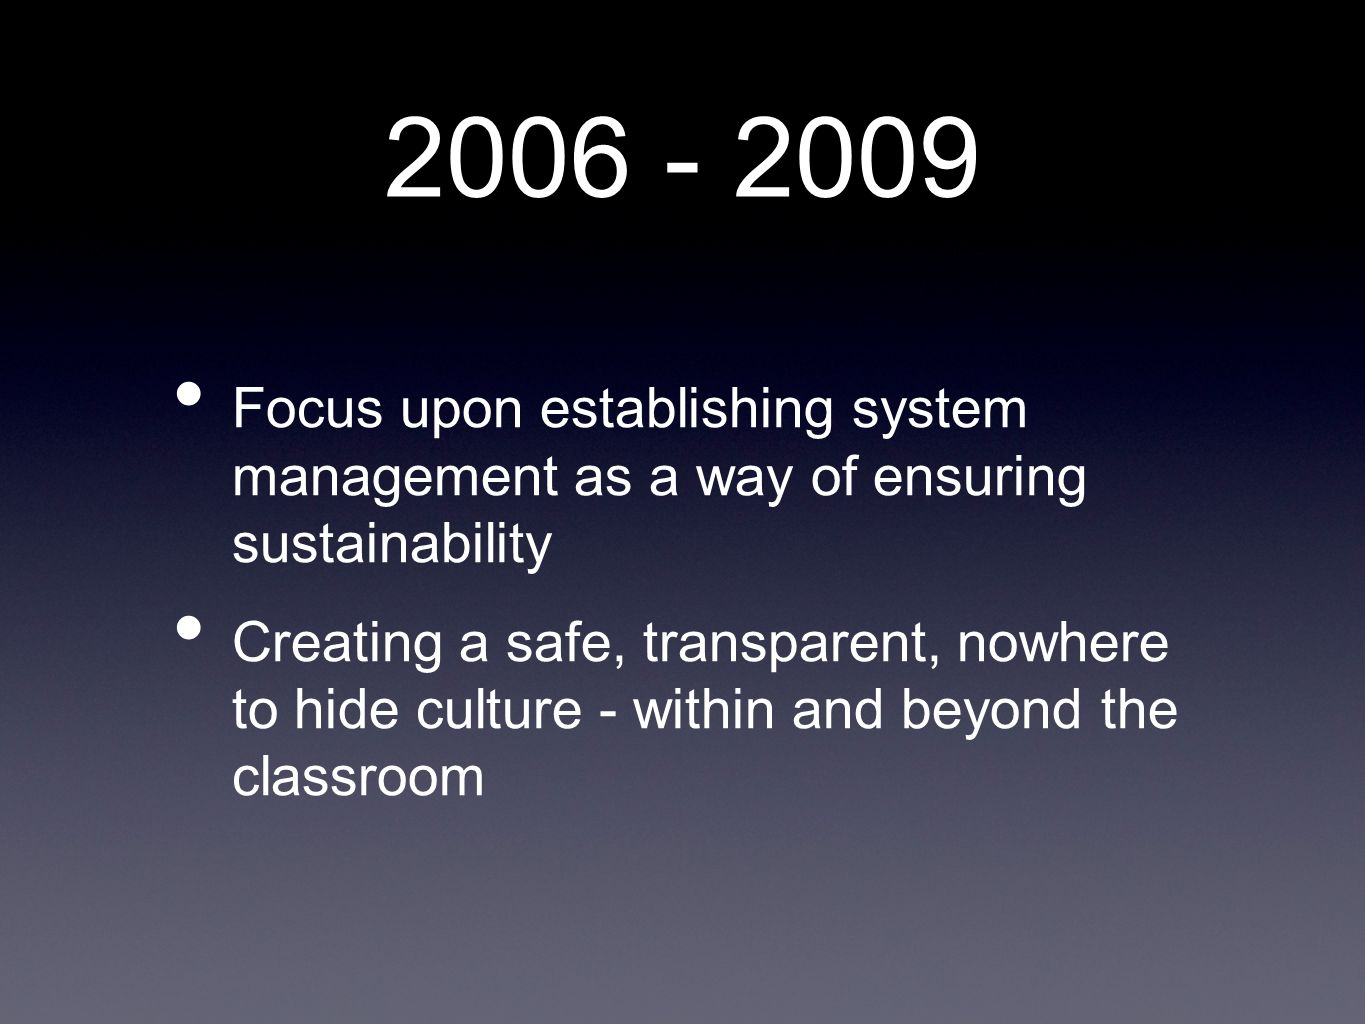 2006 - 2009 Focus upon establishing system management as a way of ensuring sustainability.